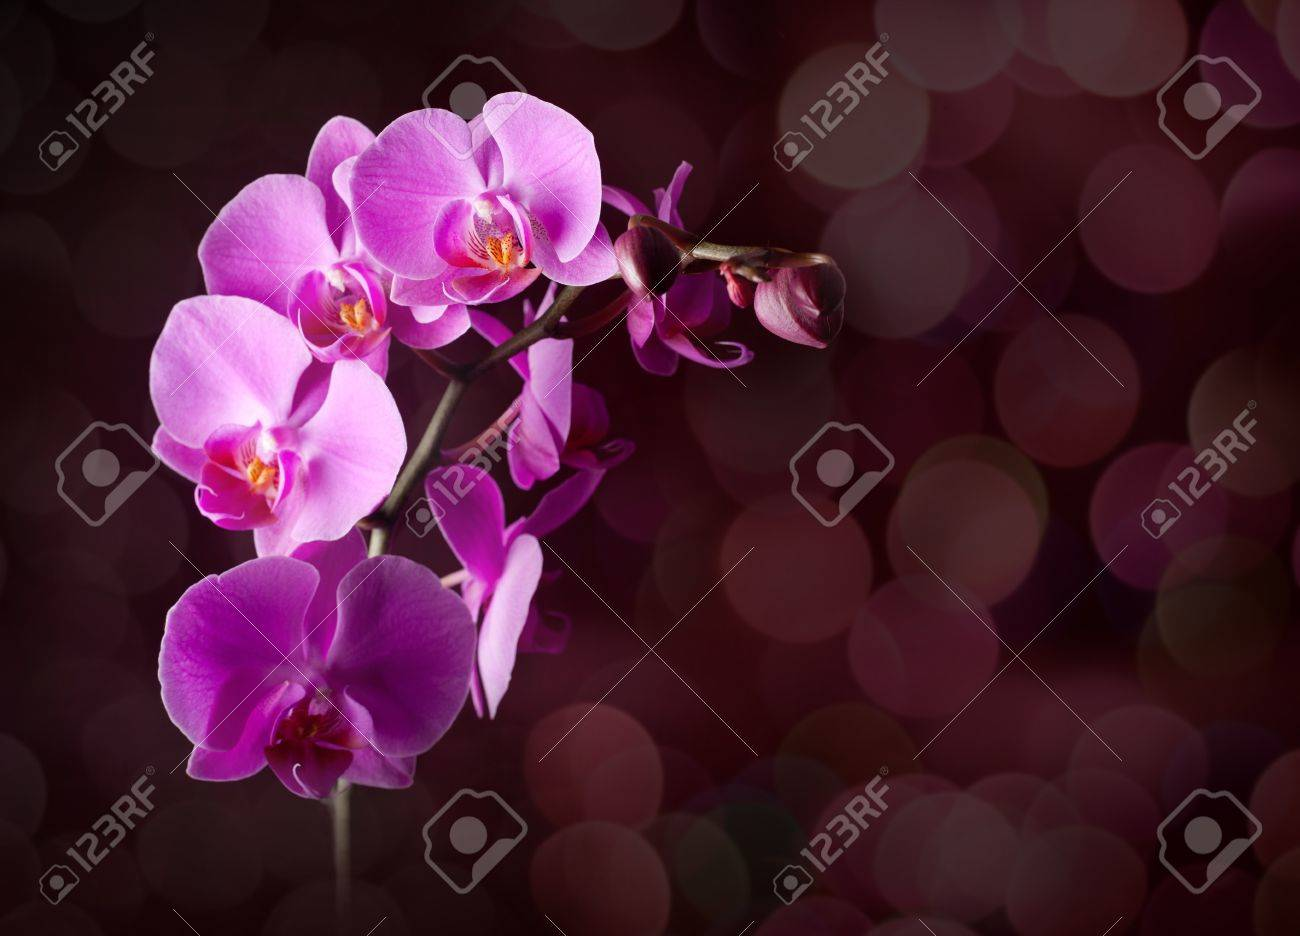 Orchid flowers on blurred dark background Stock Photo - 9613793